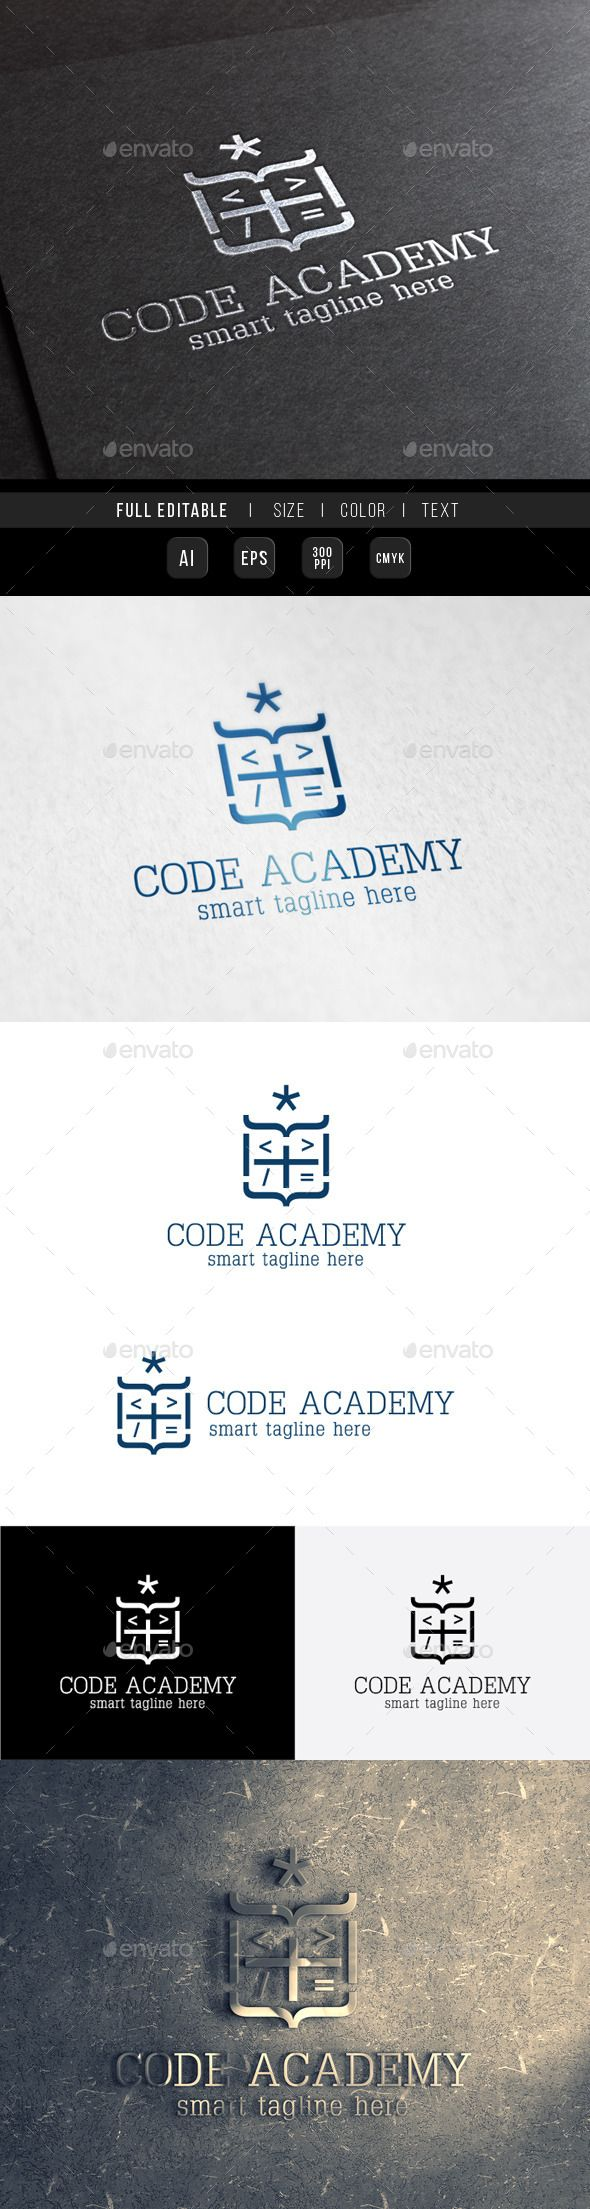 Royal King Code Academy Logo Template #design #logodesign Download: http://graphicriver.net/item/royal-king-code-academy/9966206?ref=ksioks